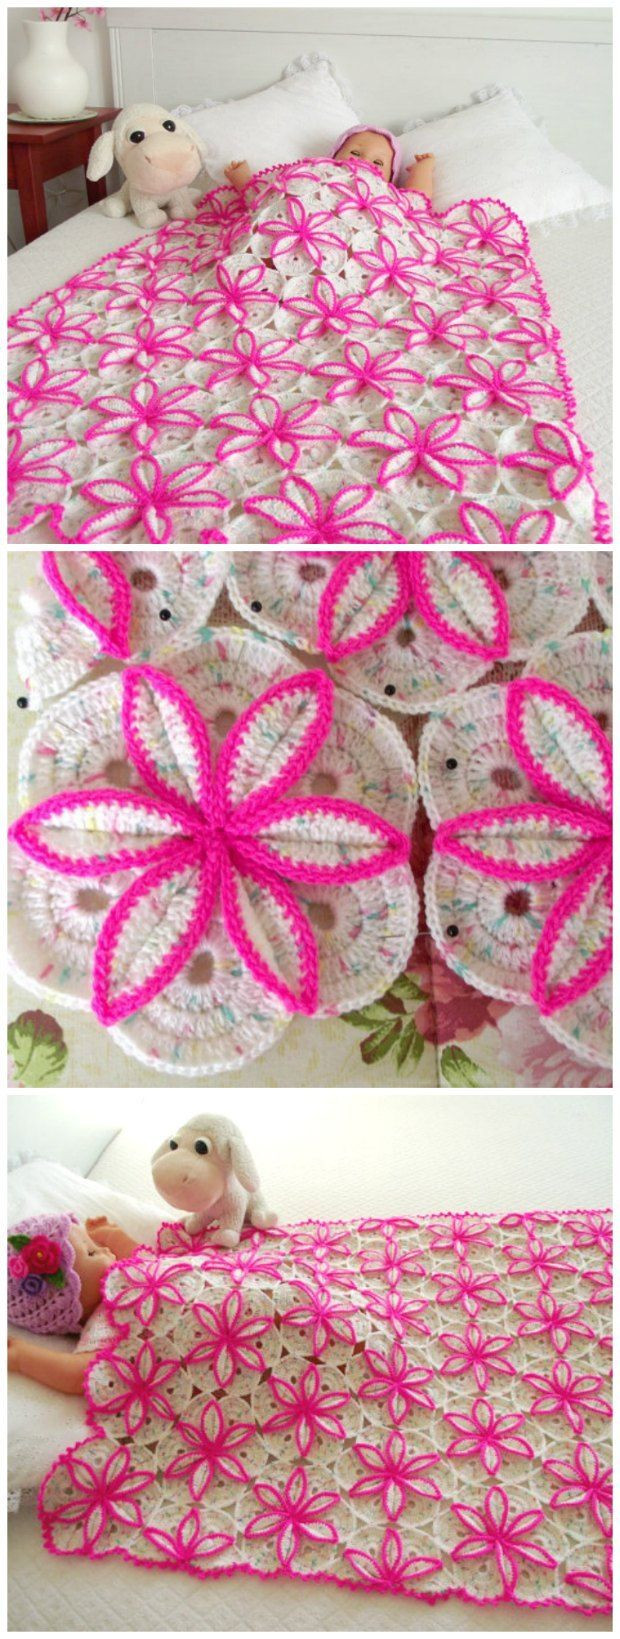 Gorgeous Crochet Afghan Patterns Inspirational Gorgeous Crochet Pattern for This Floral Blanket Pattern Of Innovative 49 Pictures Gorgeous Crochet Afghan Patterns